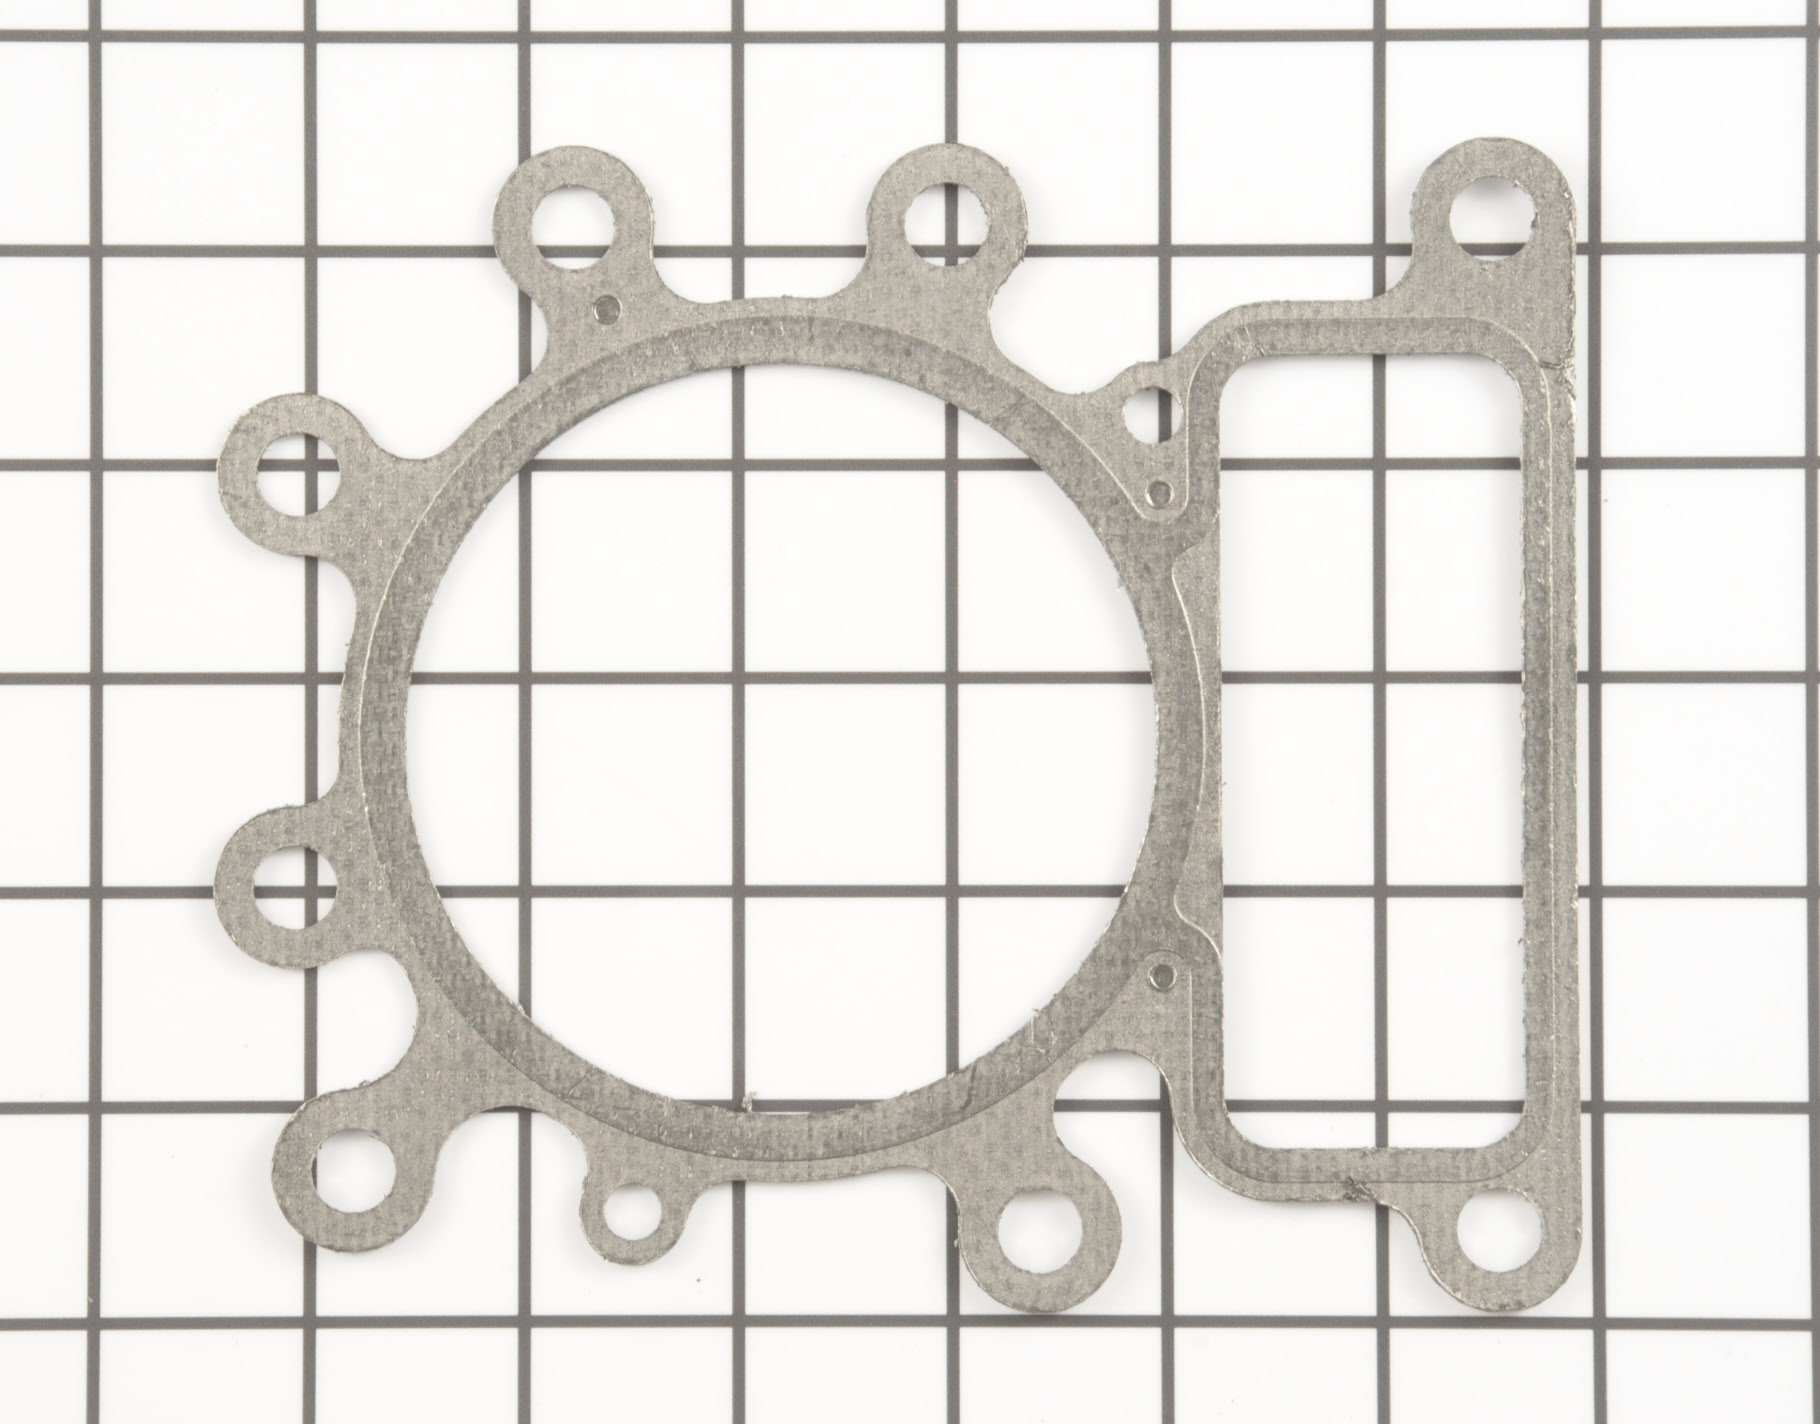 273280S Briggs & Stratton Small Engine Part -Cylinder Head Gasket